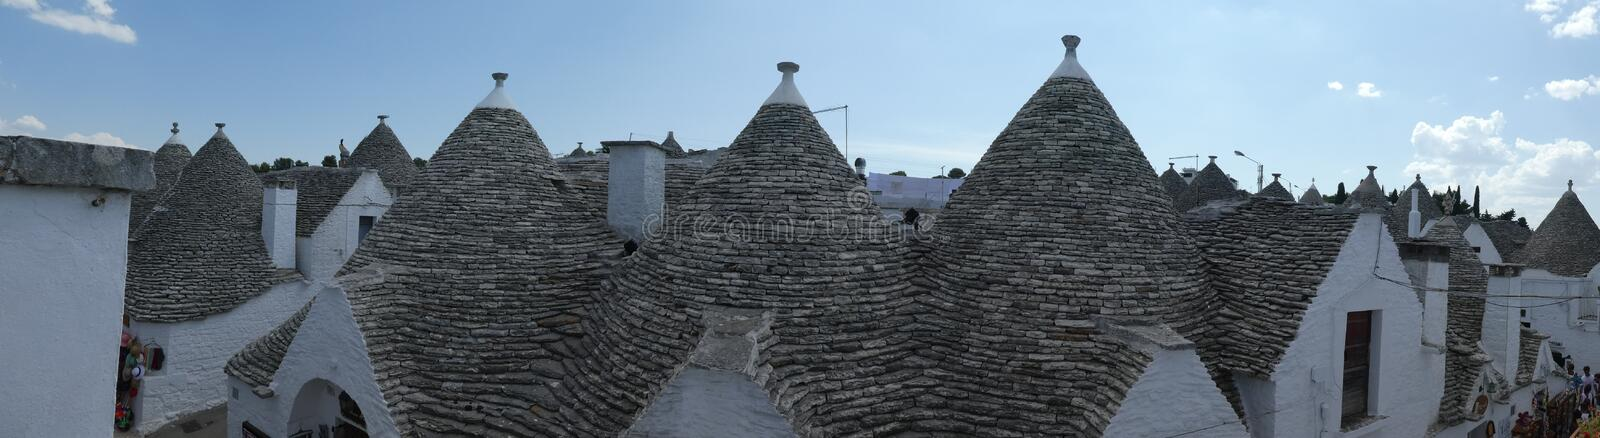 Roof Panoramic Alberobello Trulli Trullo Apulia Southern Italy Romantic Cottage royalty free stock images